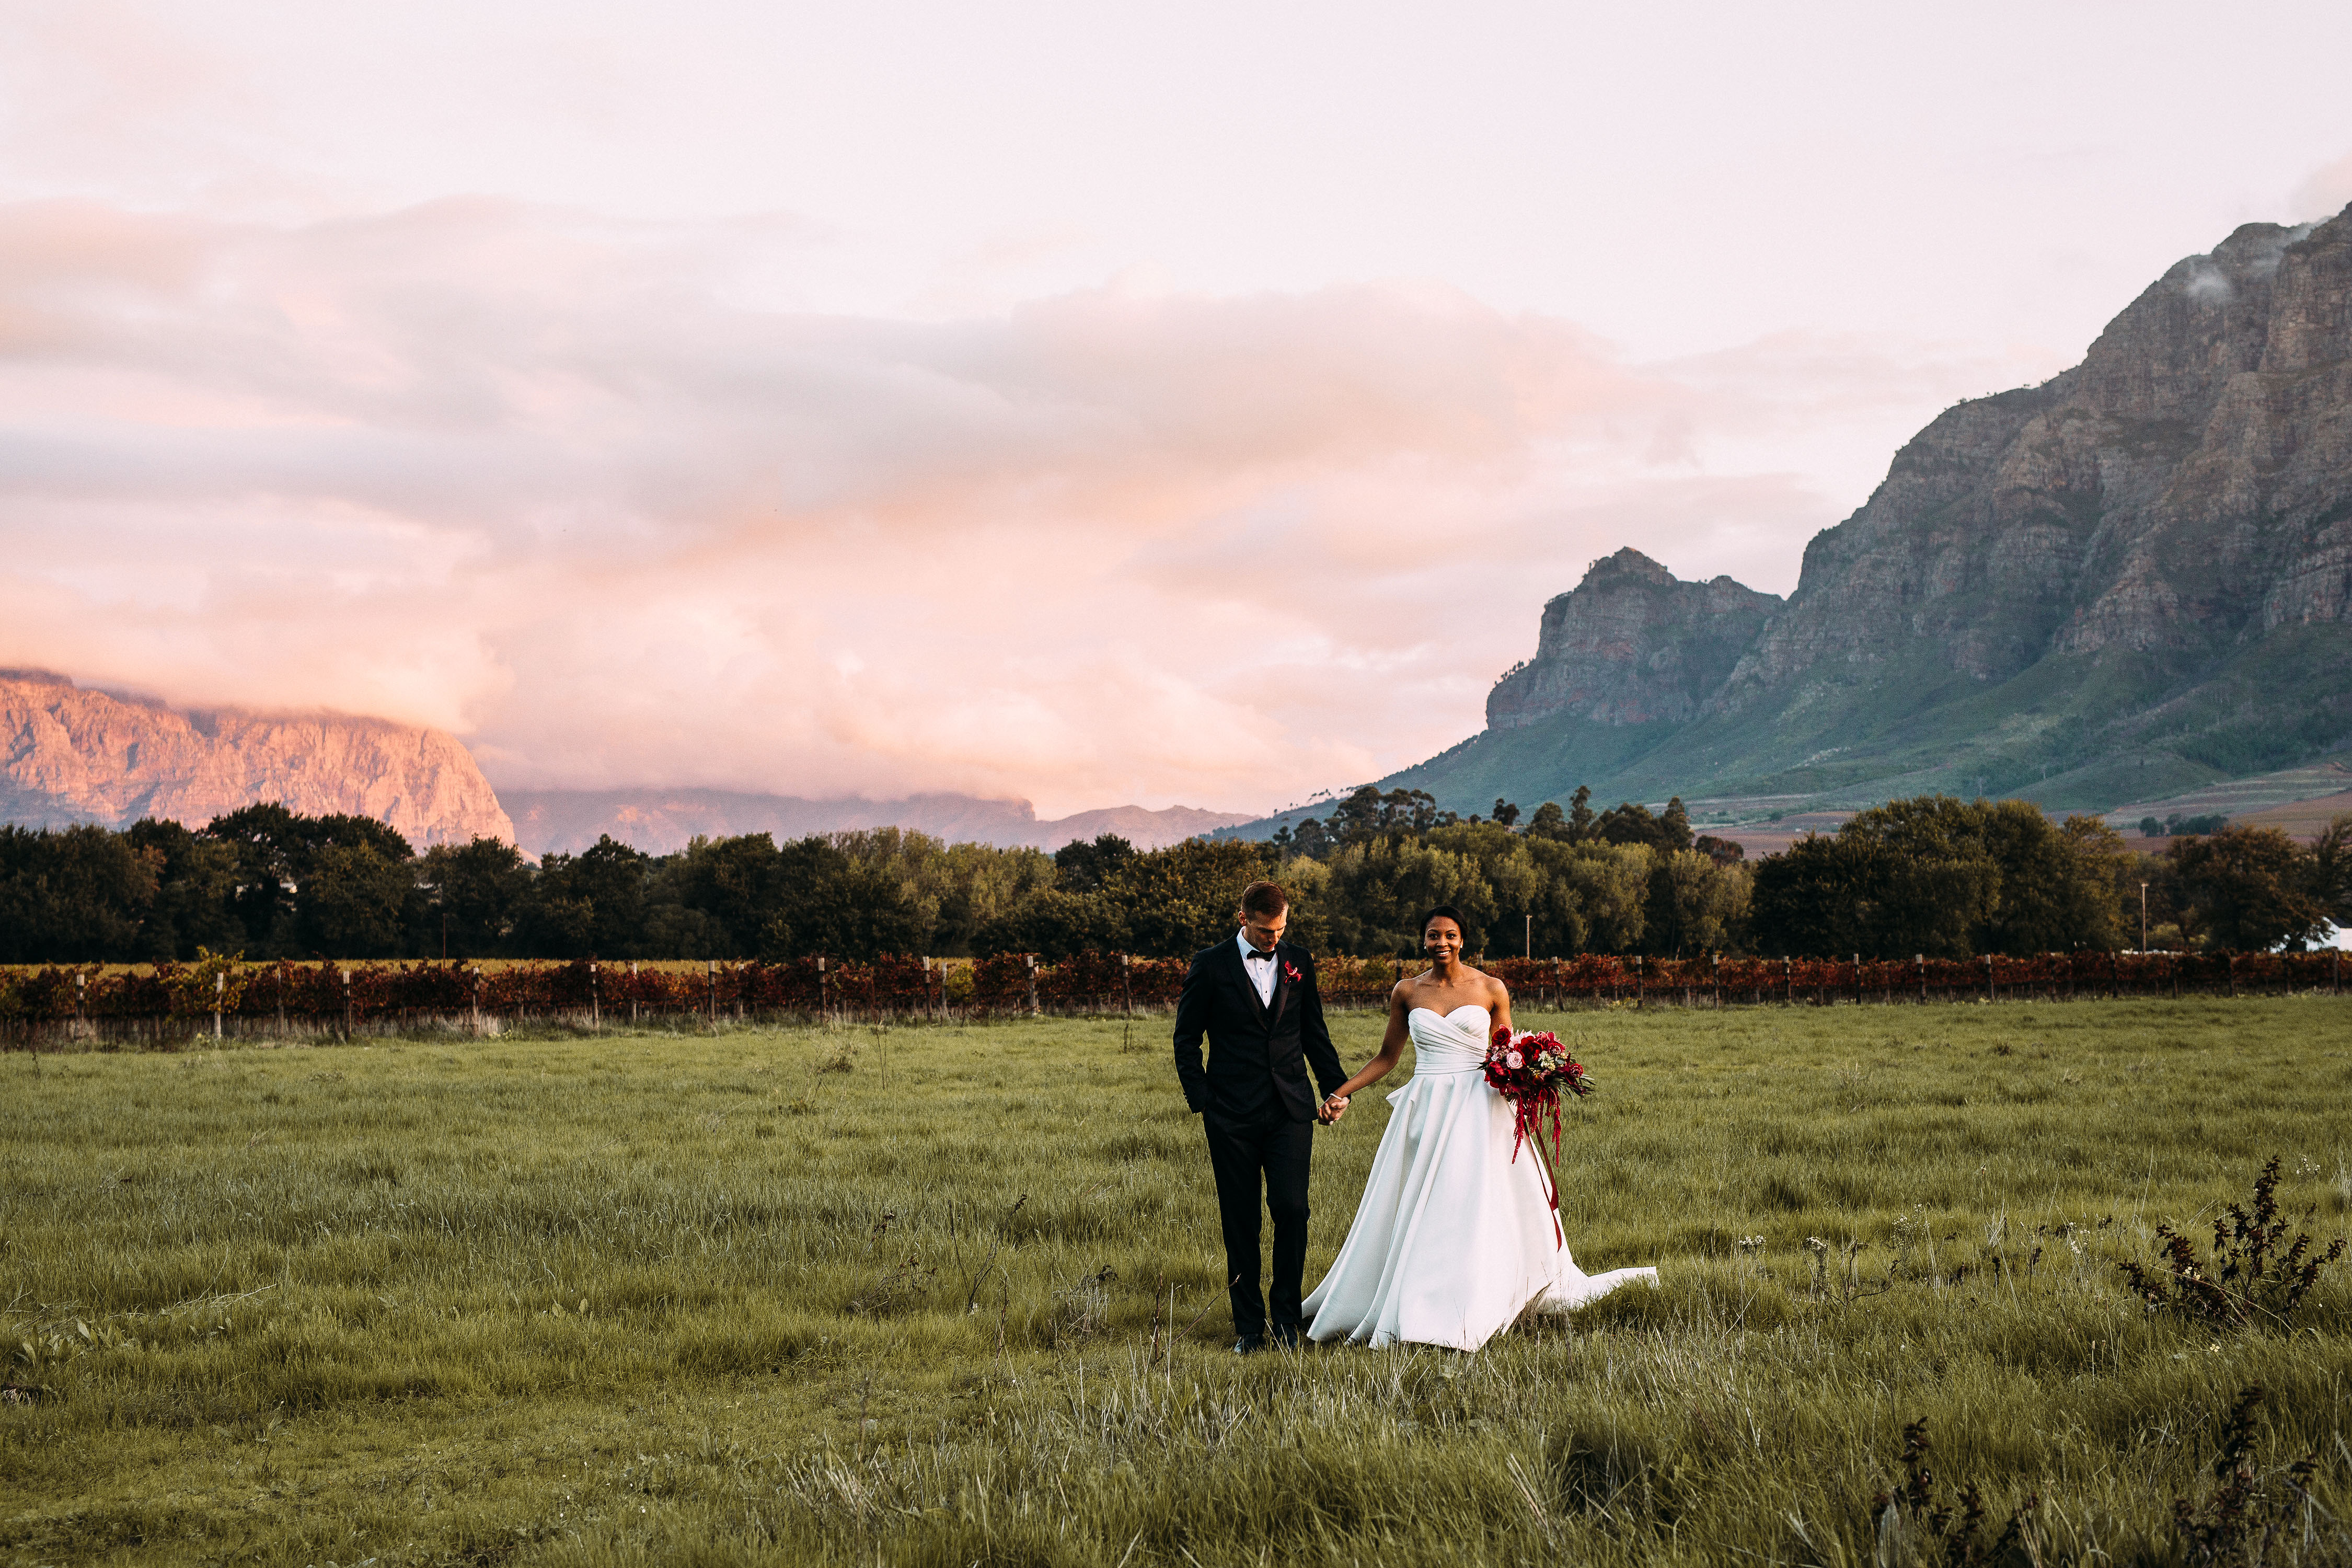 yolana douglas wedding couple in field in front of mountains